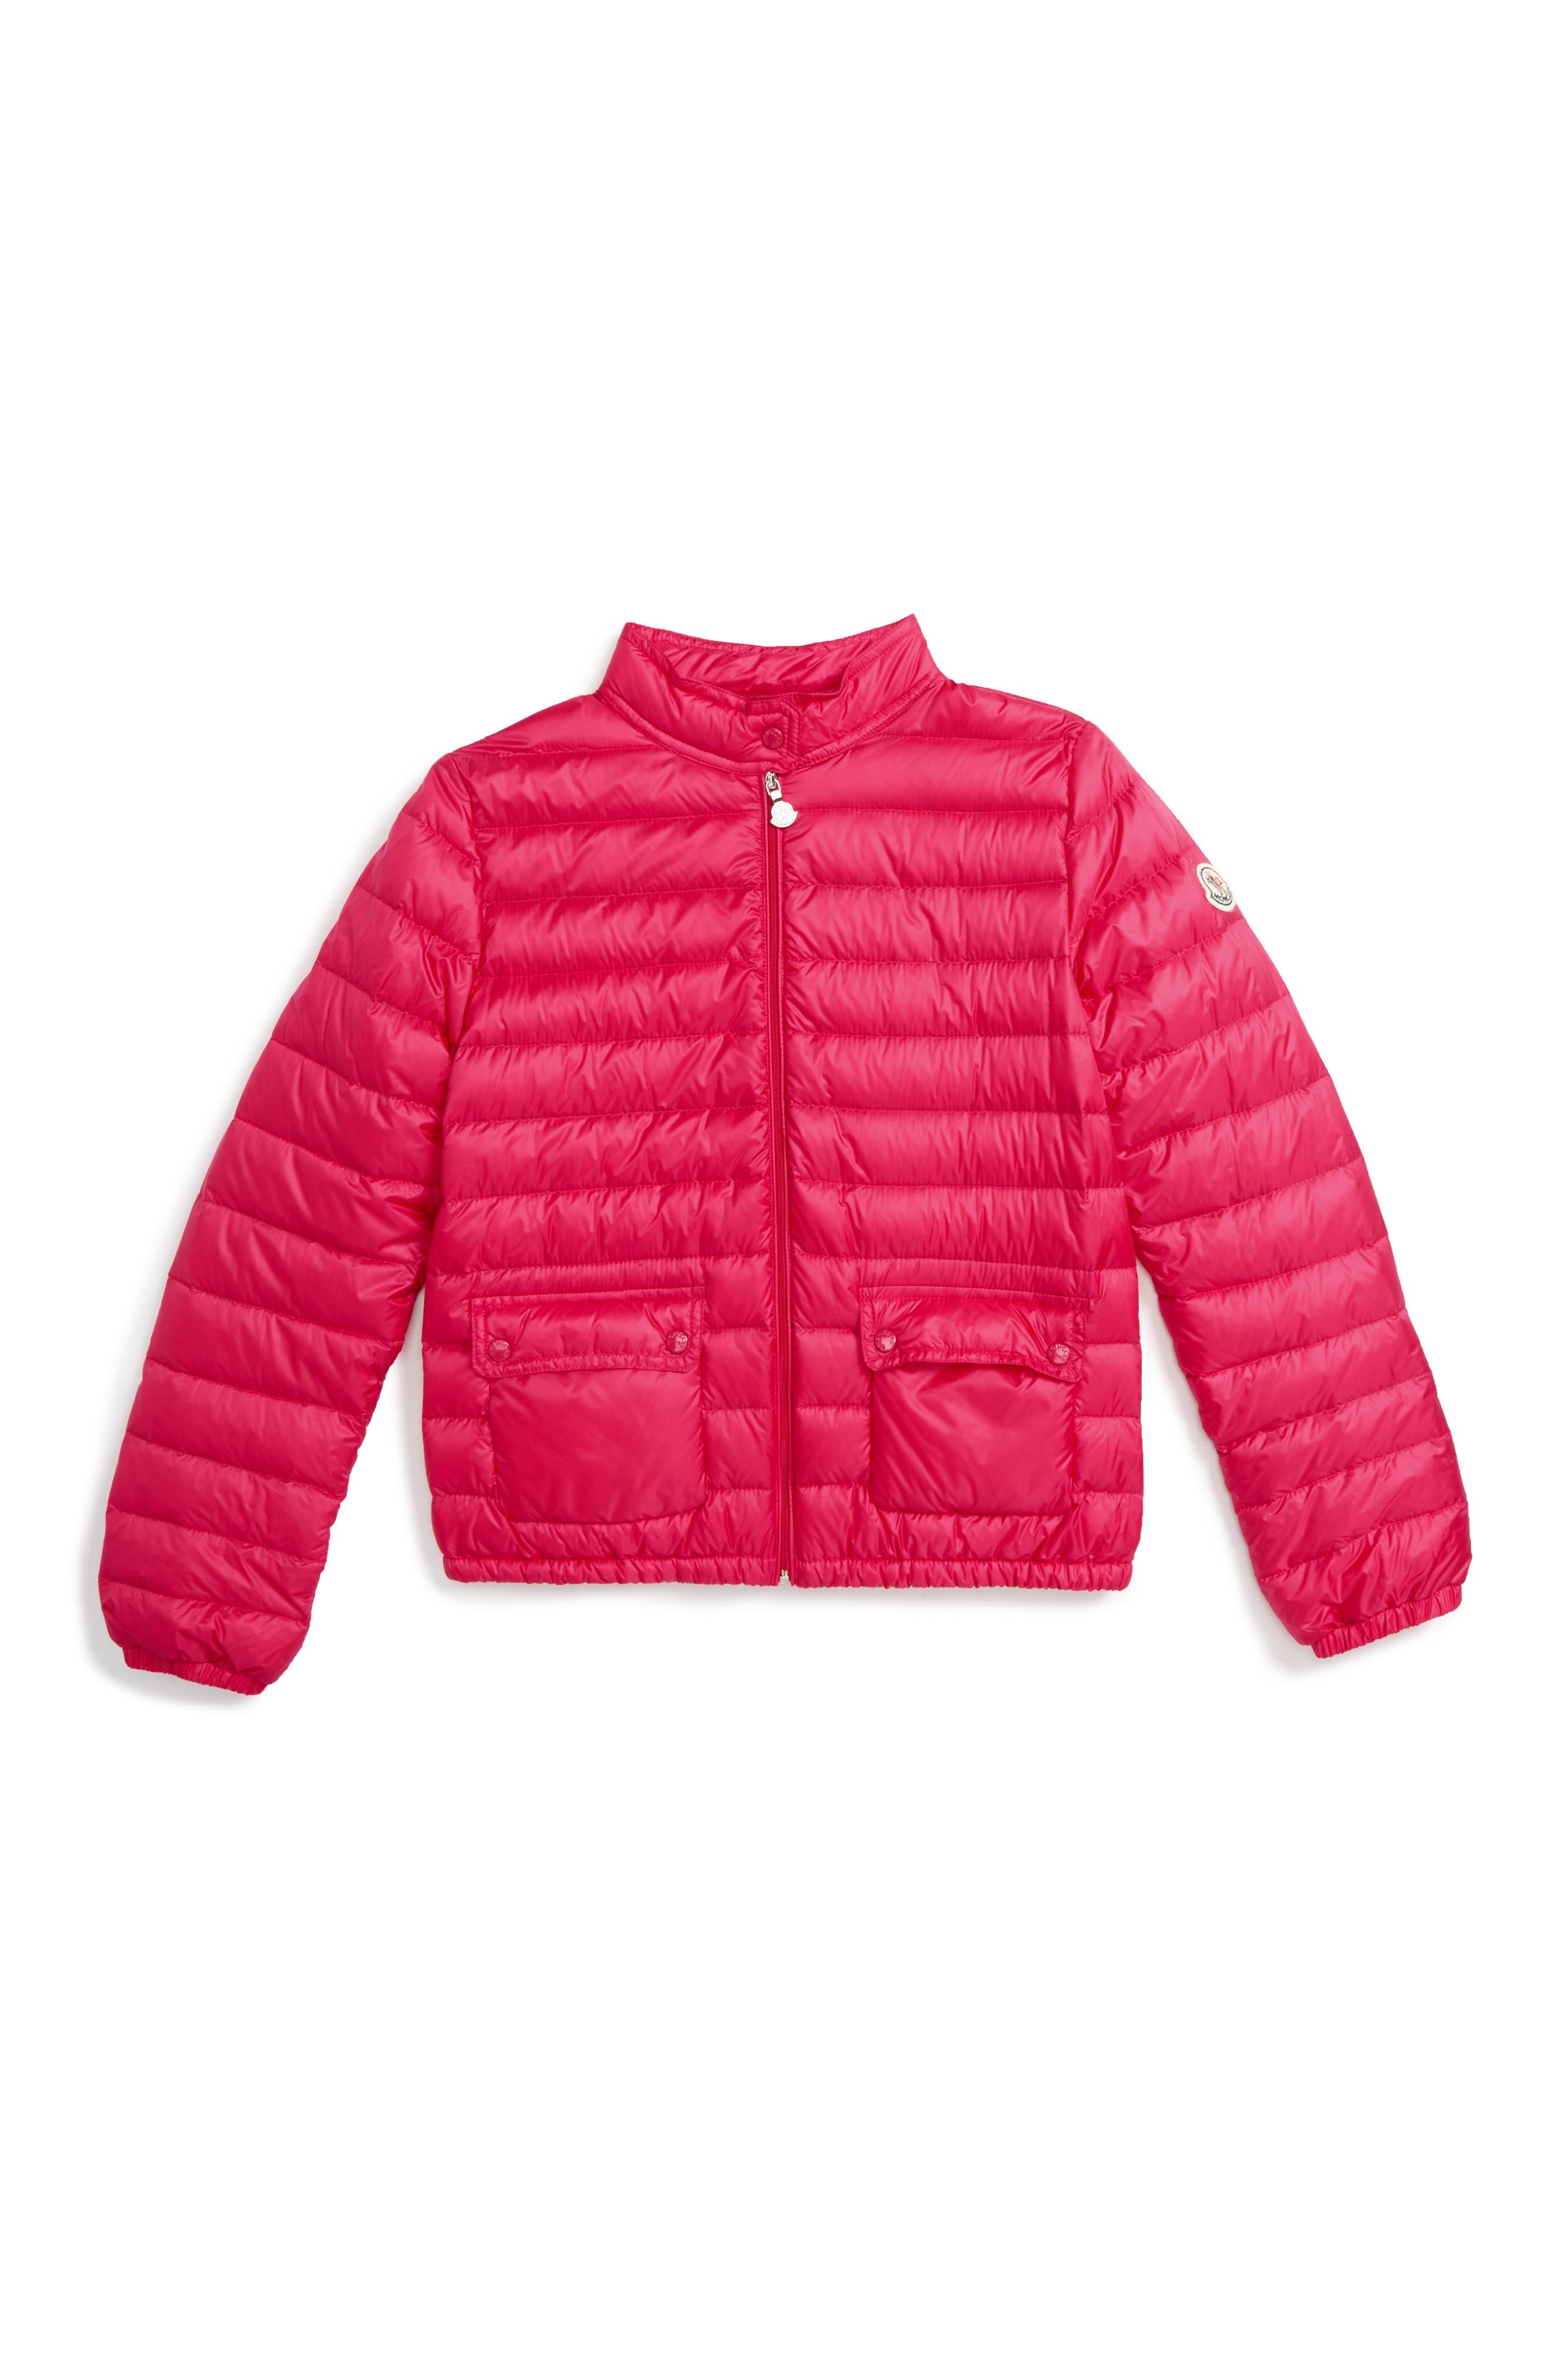 Lans Water Resistant Down Jacket,                         Main,                         color, Fuchsia